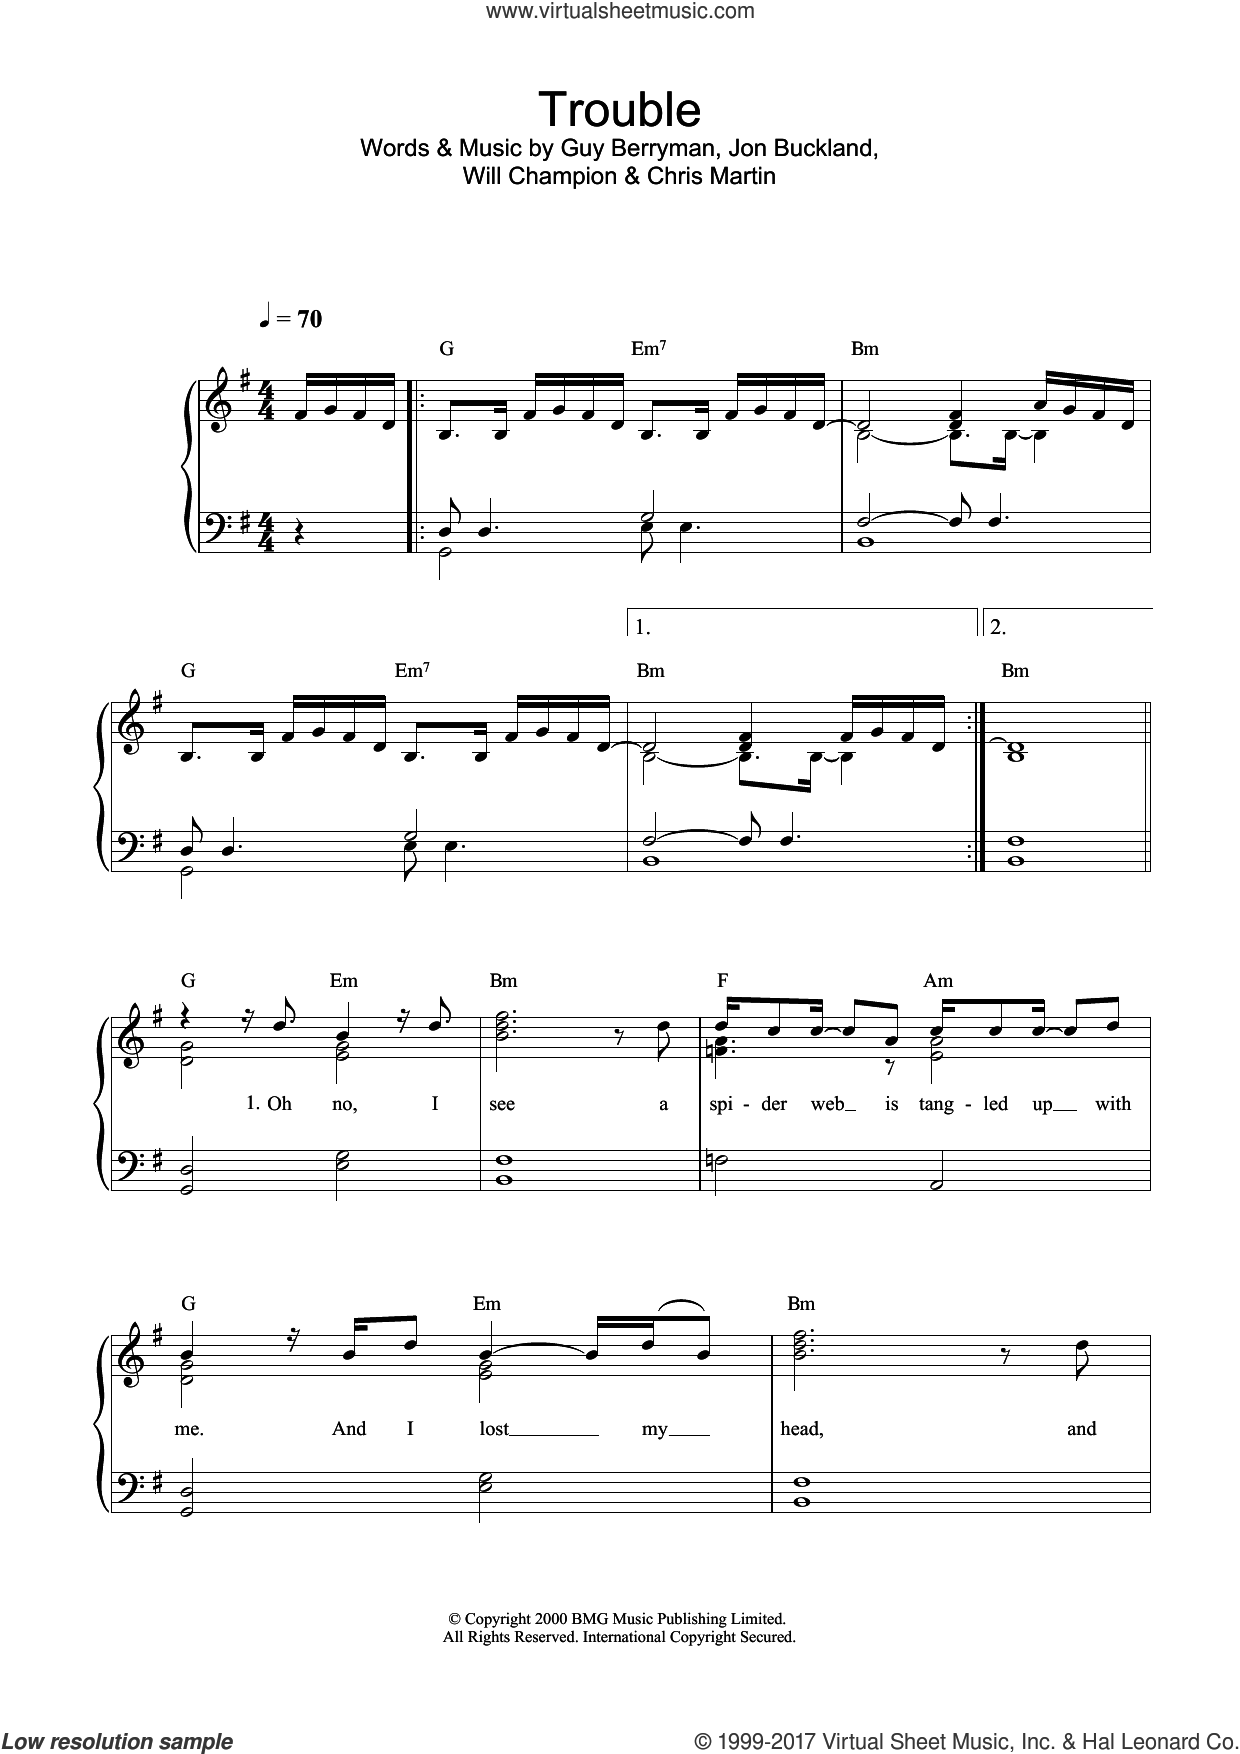 Trouble sheet music for piano solo by Coldplay, Chris Martin, G Berryman, Guy Berryman, J Jon Buckland, Jon Buckland, Jonny Buckland, W & Martin, C Champion and Will Champion, easy skill level